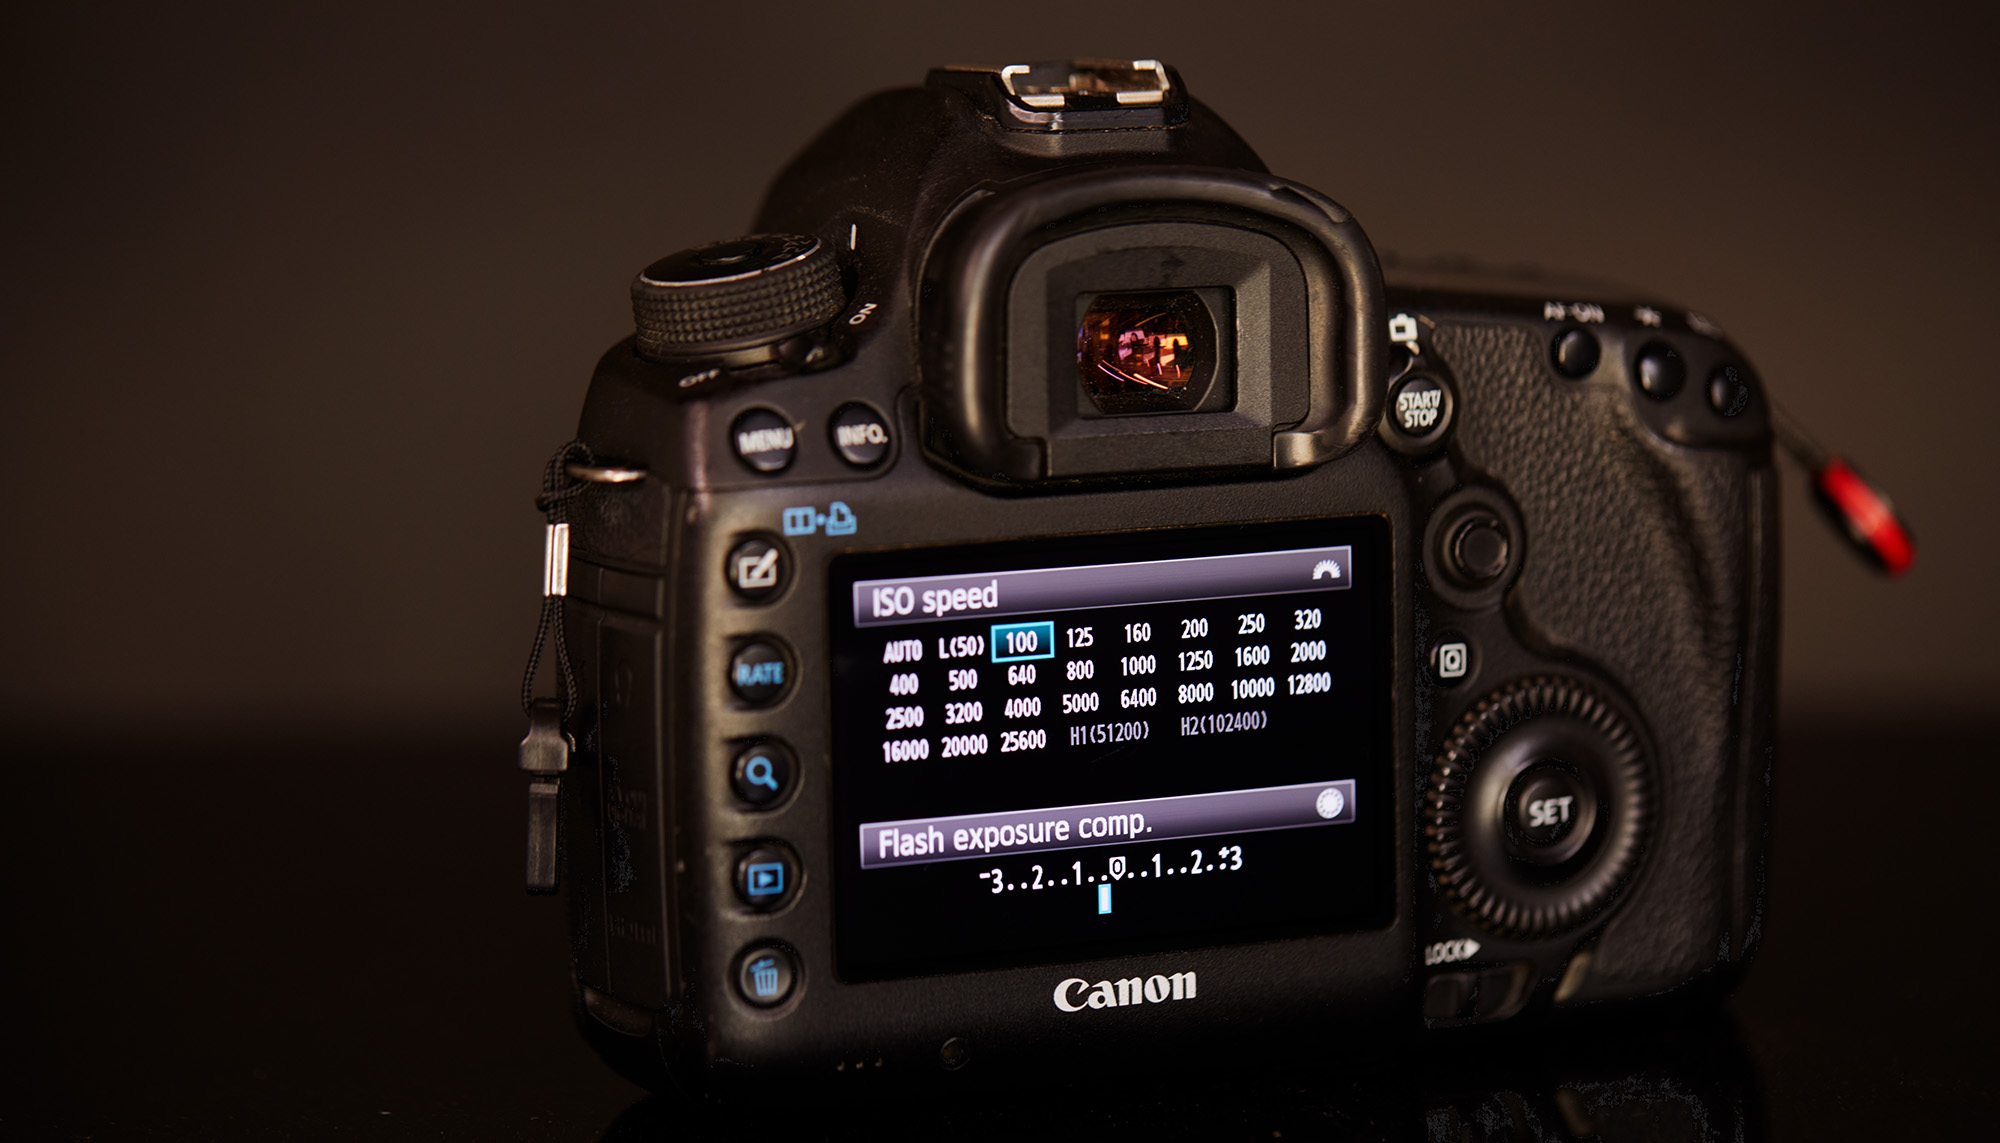 ISO Explained in Digital Photography